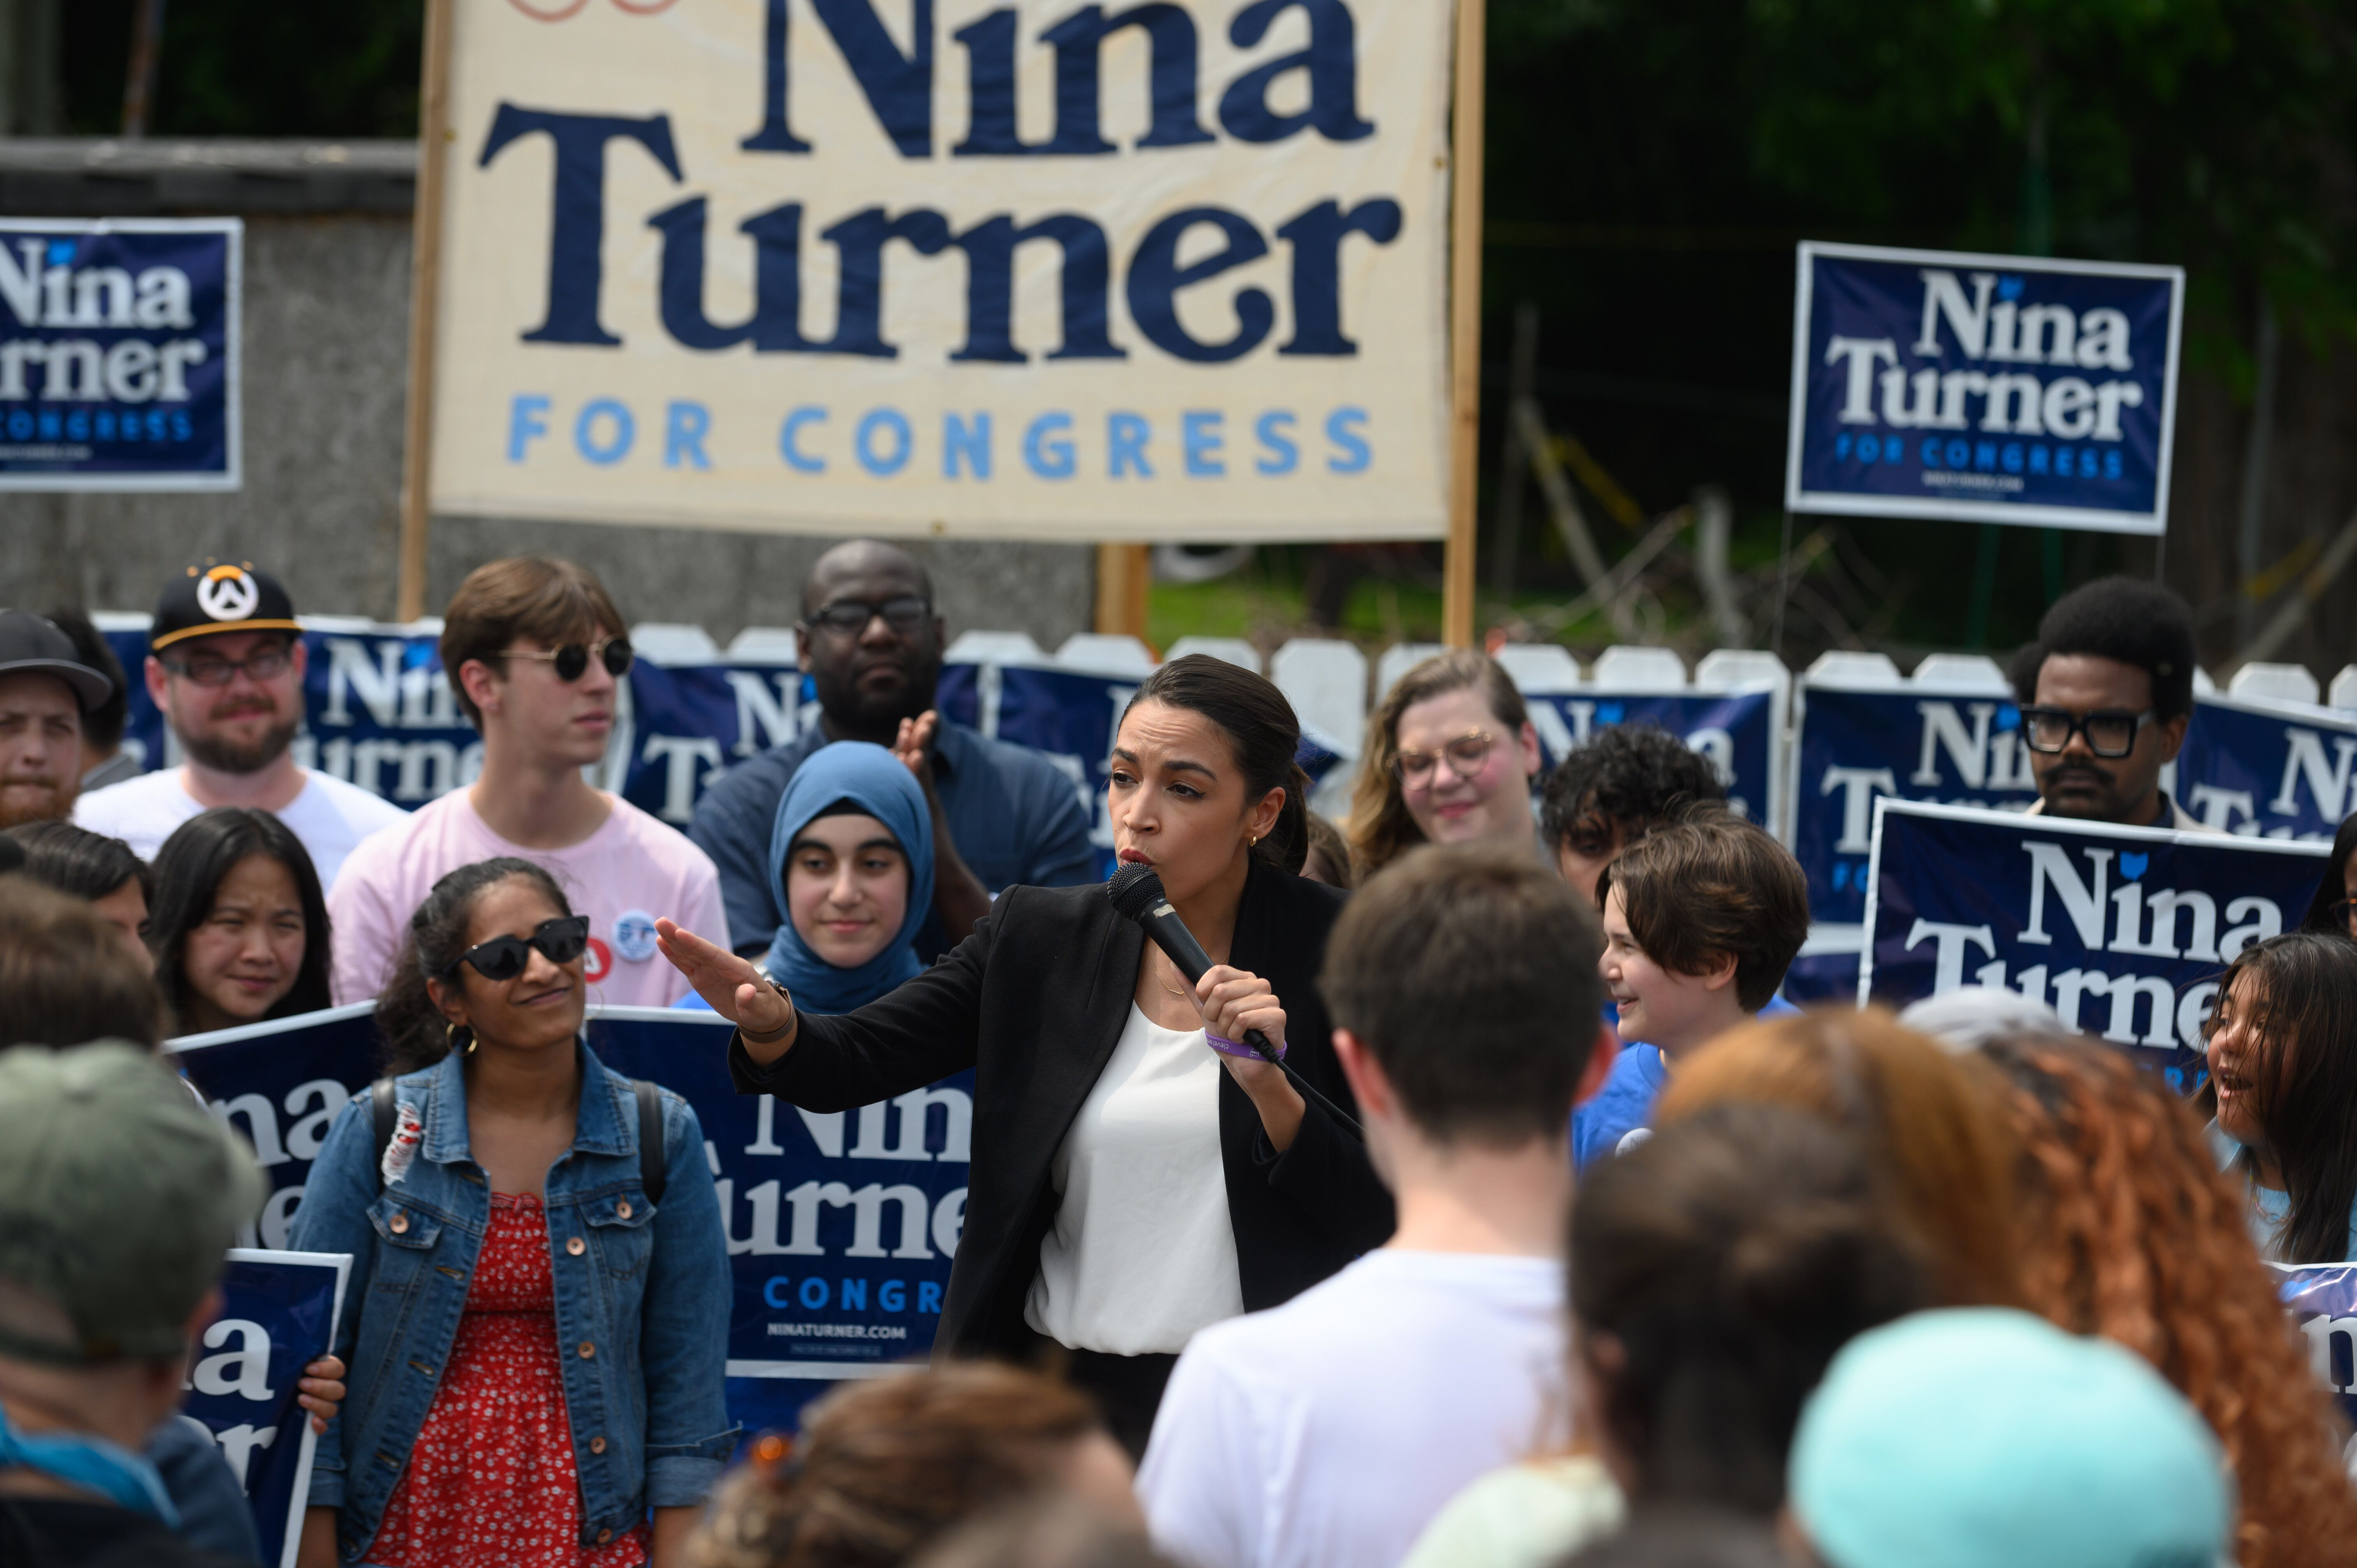 Rep. Alexandra Ocasio-Cortez (D-N.Y.) speaks in support of Nina Turner in Cleveland on July 24. Her visit was part of a massi